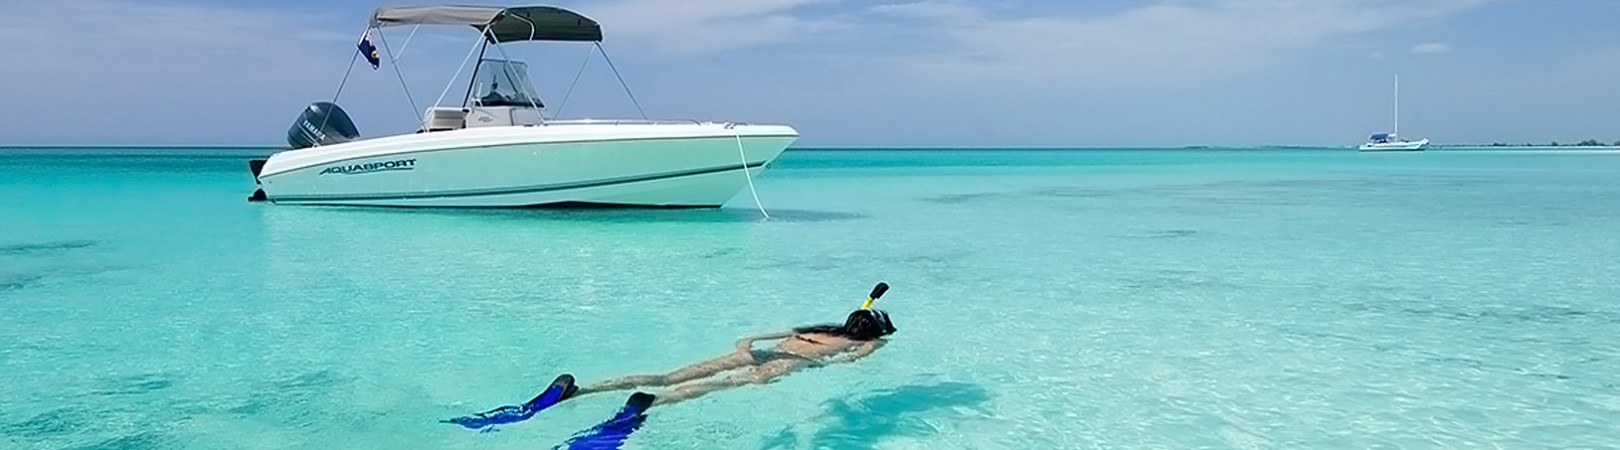 Turks-and-Caicos-Snorkeling